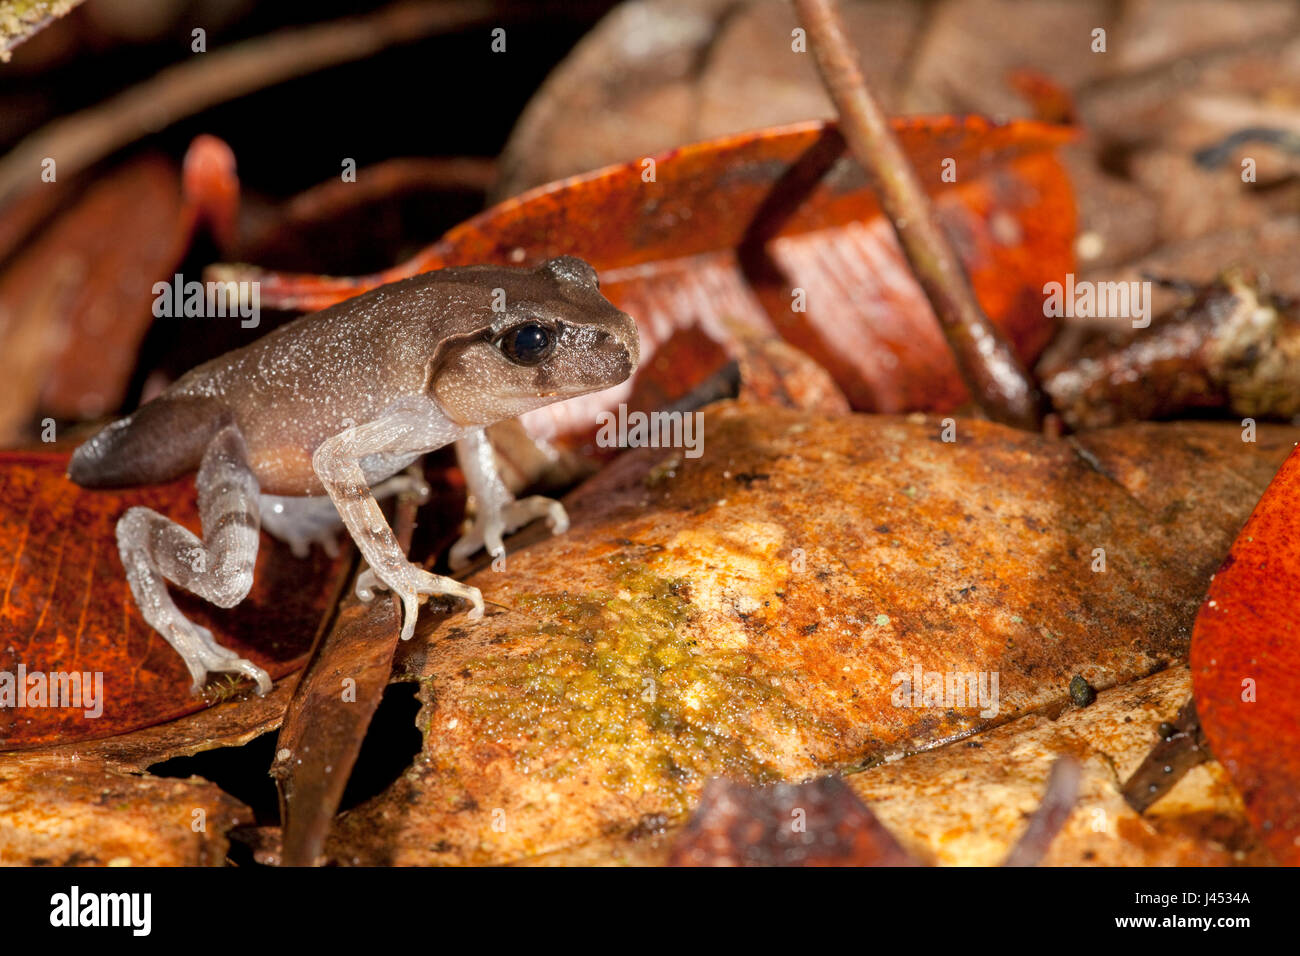 Photo of a just metamorphoses Montane litter frog - Stock Image